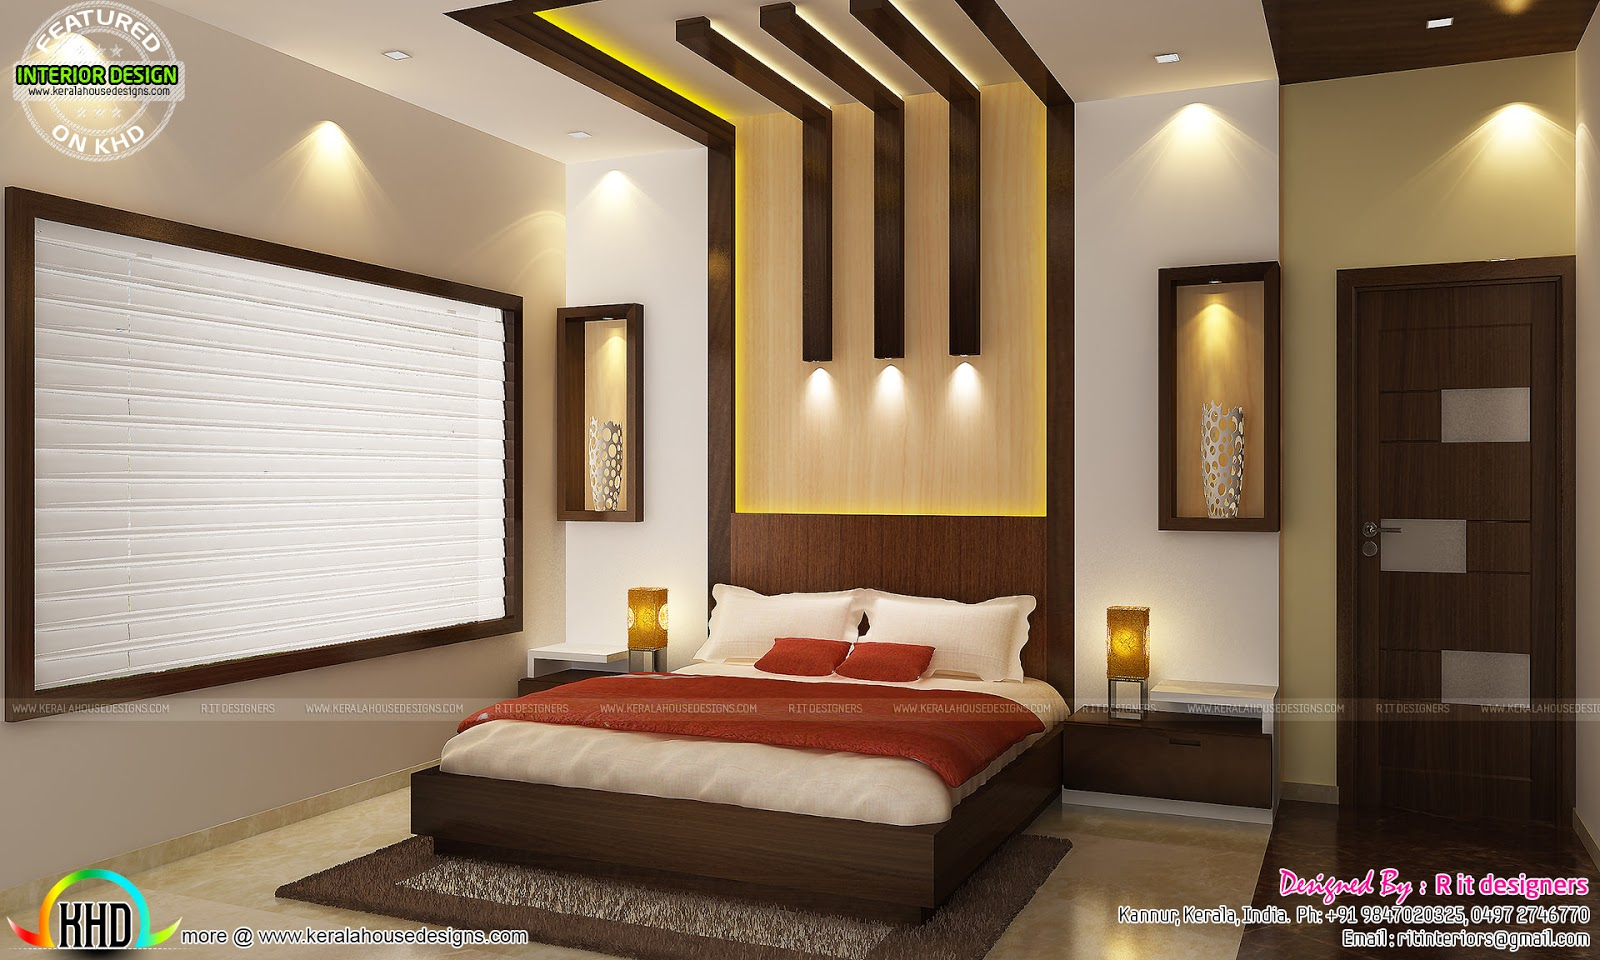 Kitchen living bedroom dining interior decor kerala for Bedroom interior design pictures